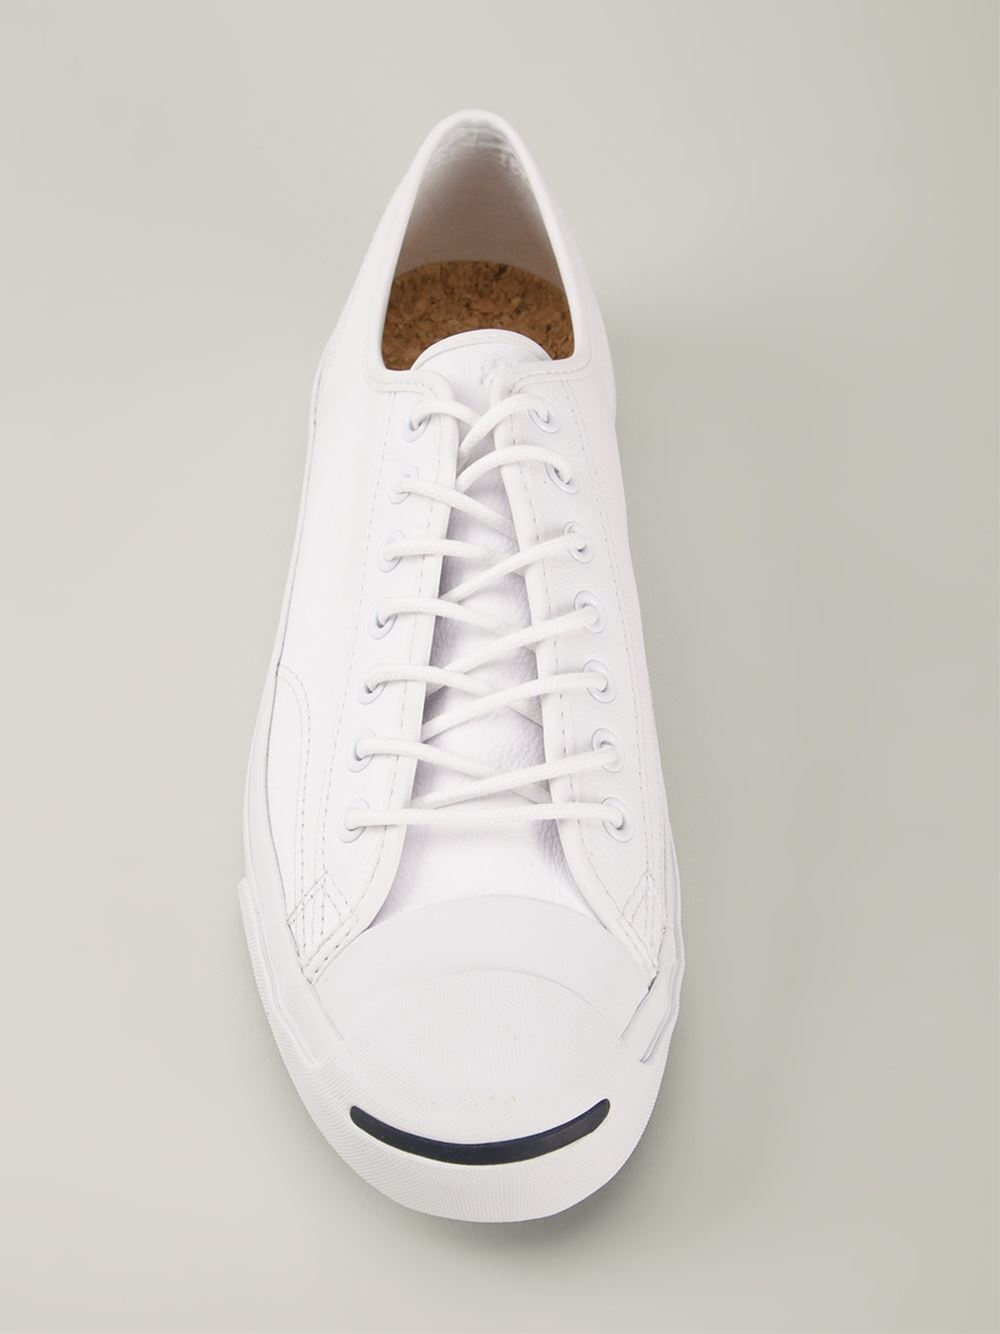 converse jack purcell tumbled leather ox off 57% - www.olivier-ansel ... 2b7406738